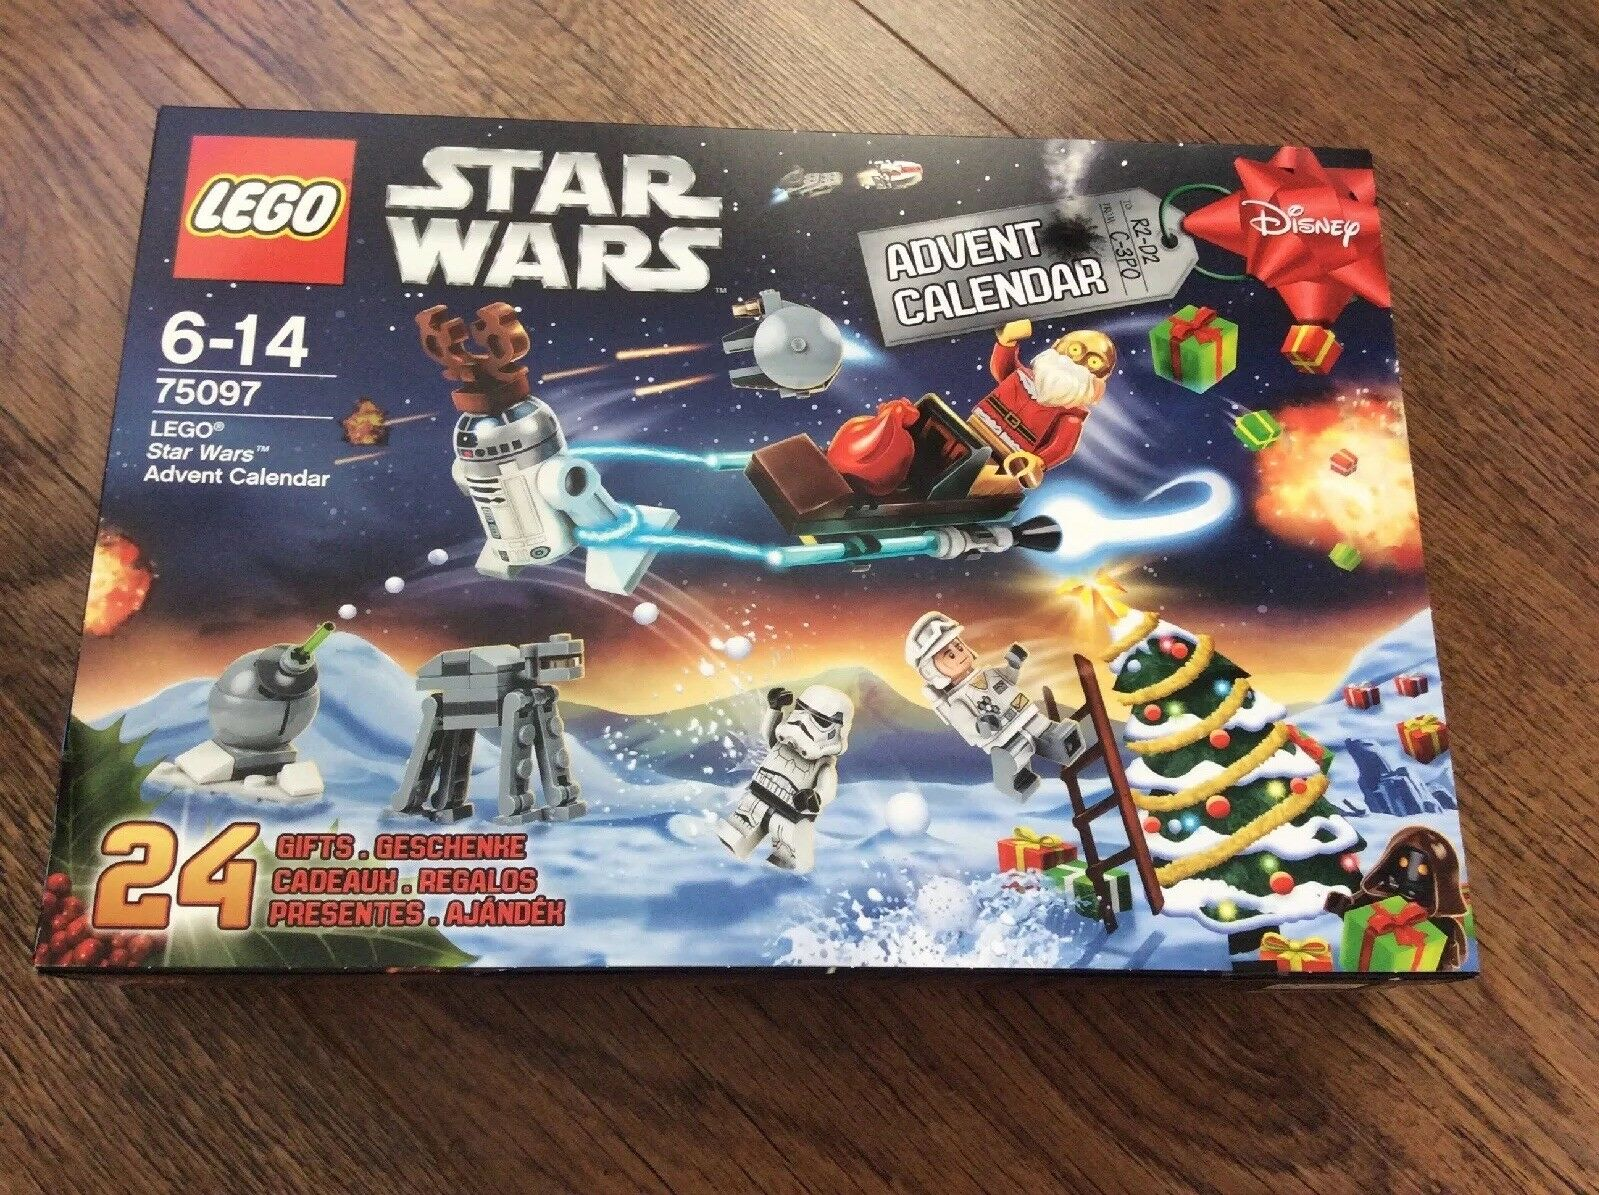 LEGO Star Wars Advent Calendar 75097 - Brand New and Sealed